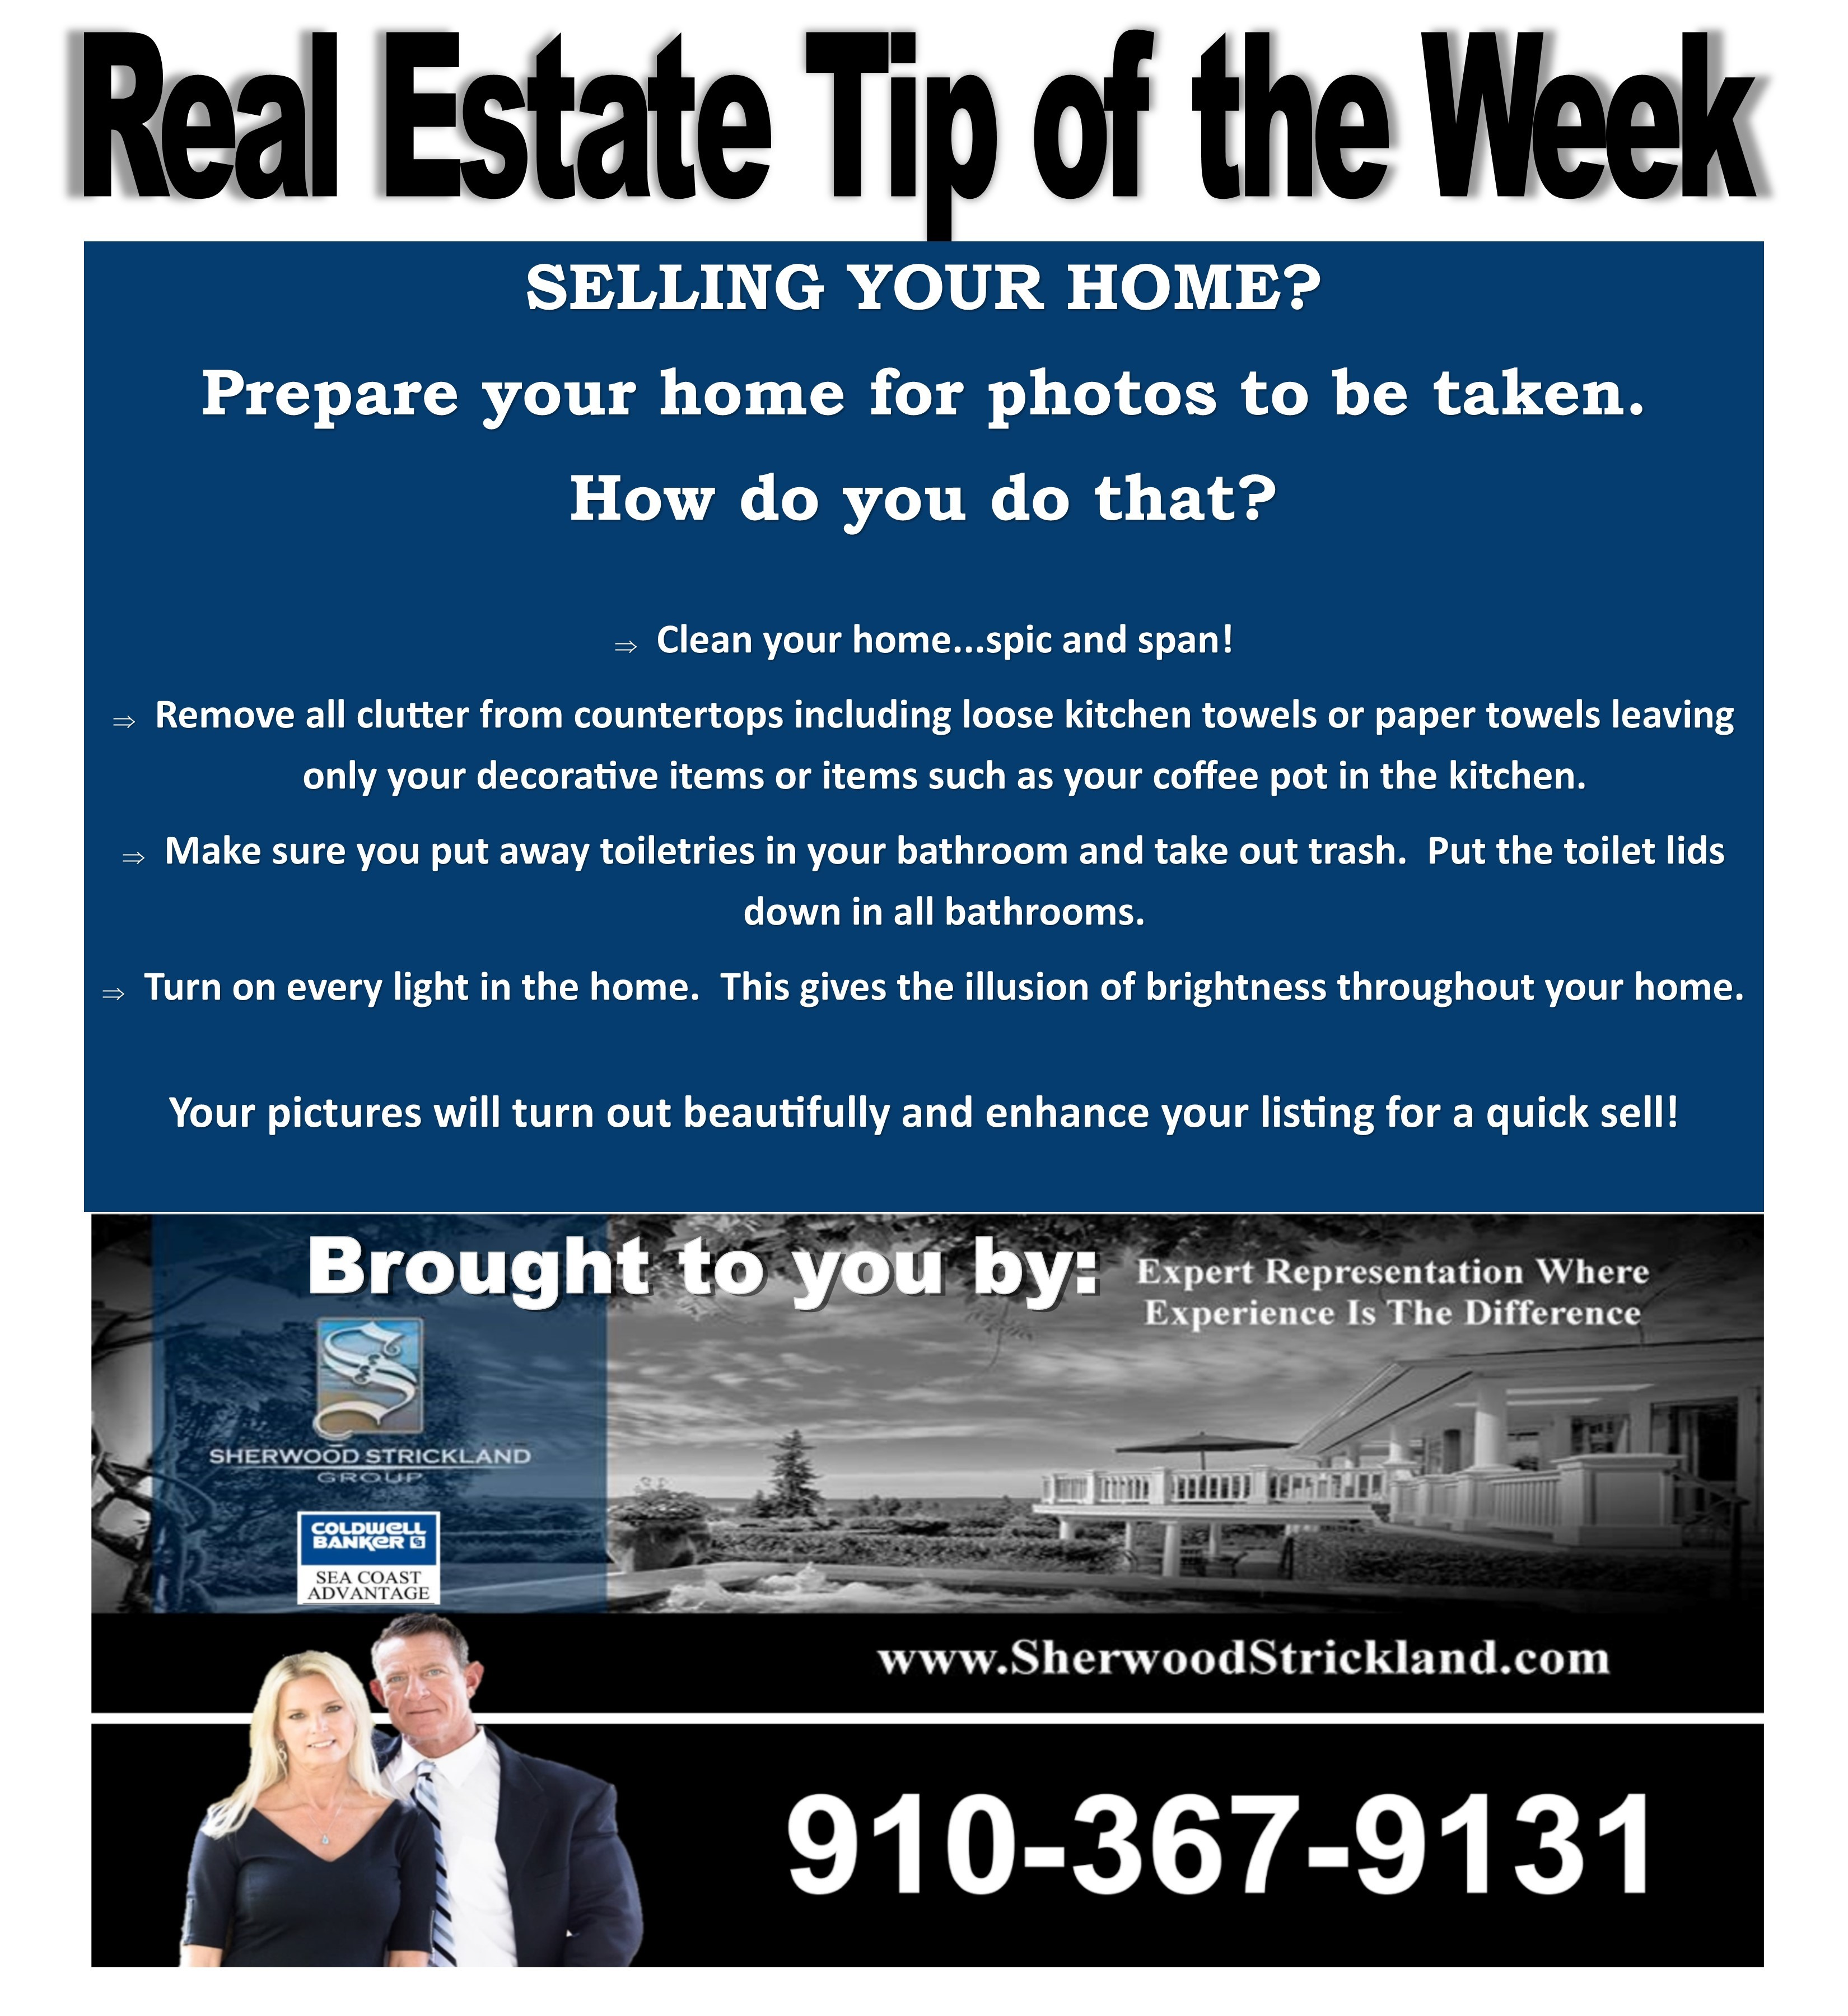 real estate tip of the week by the sherwood strickland group